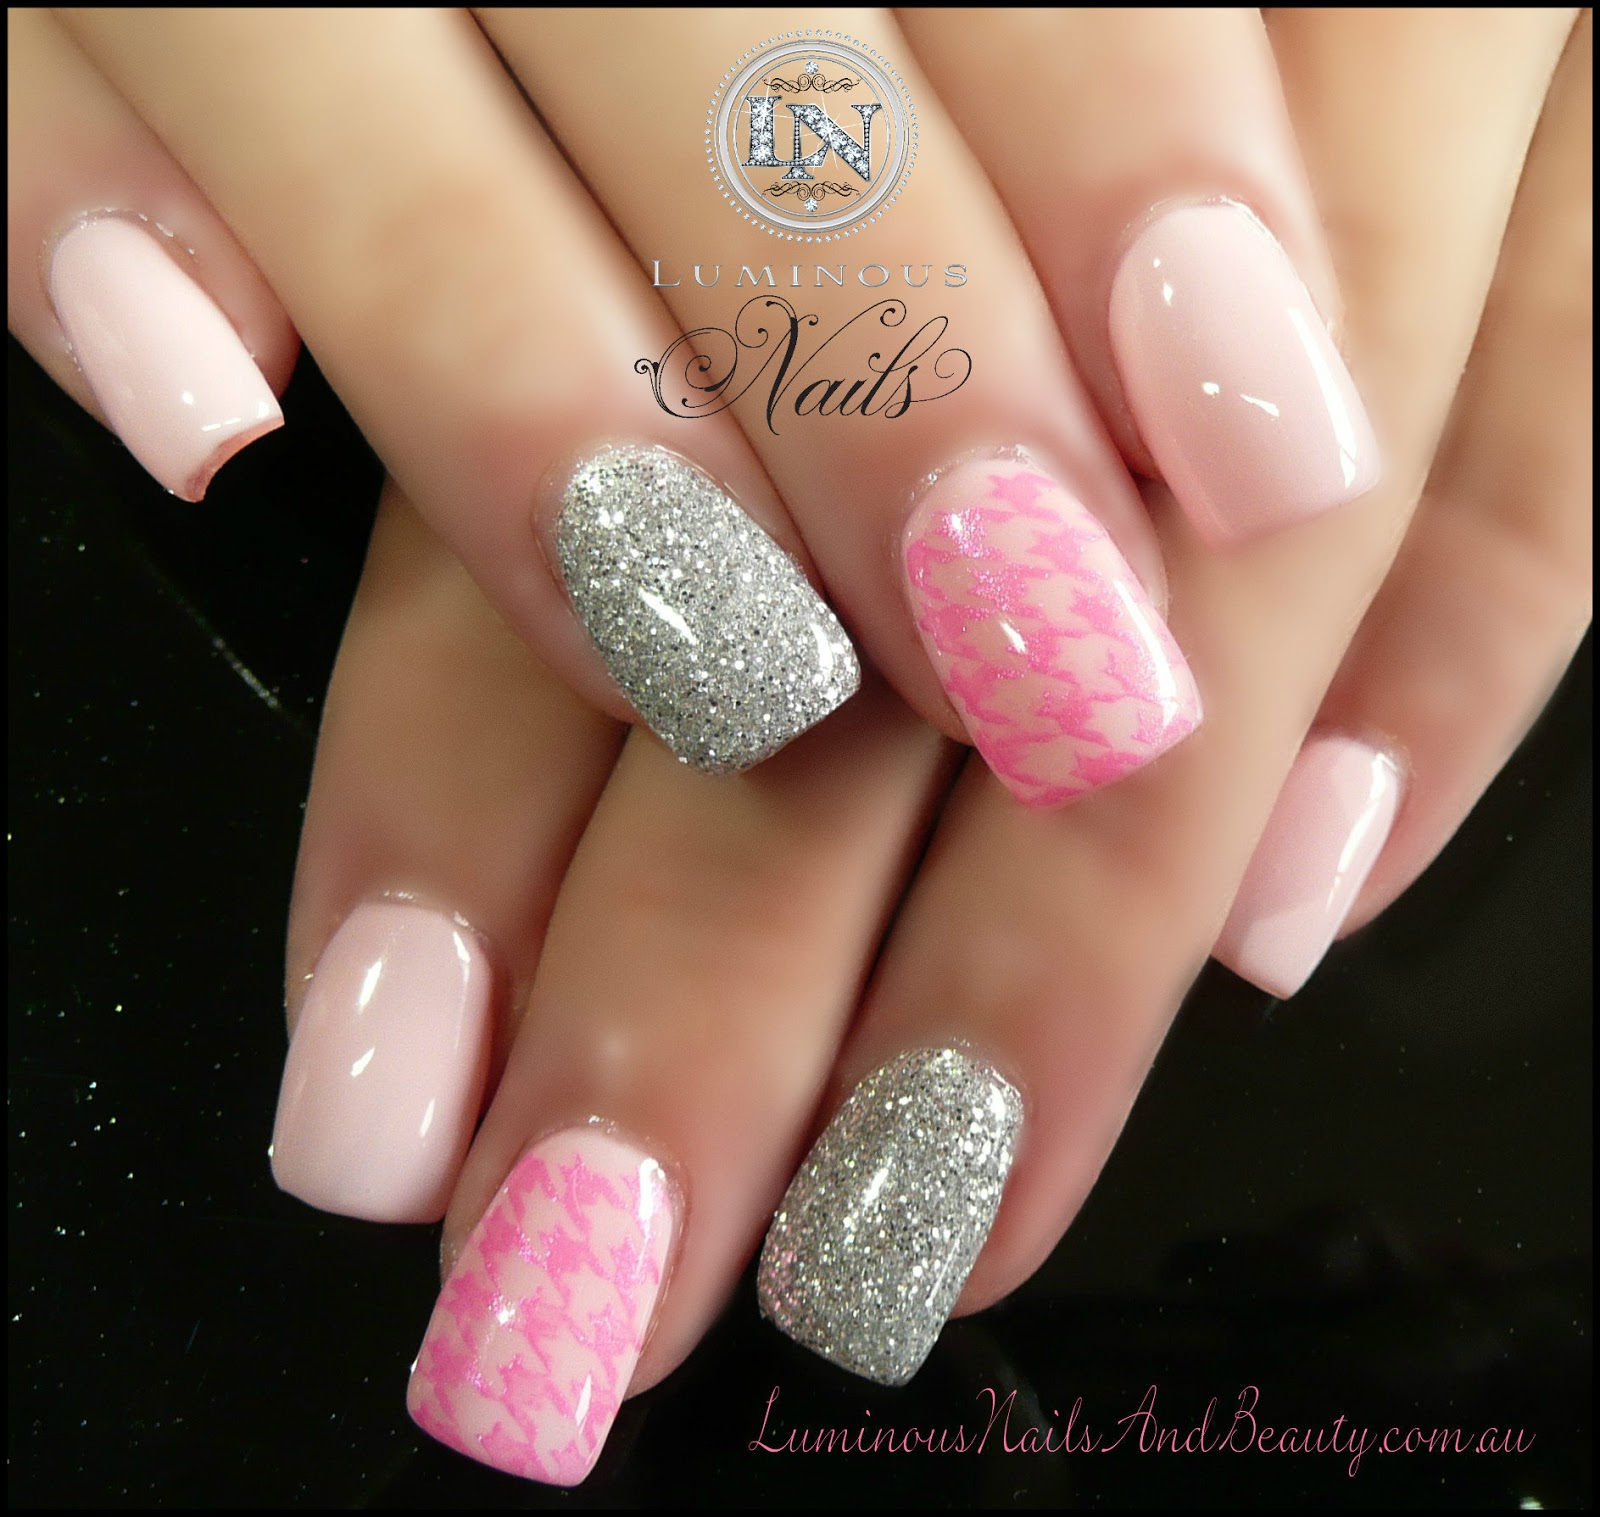 Lumious Nails And Beauty Gold Coast Queensland Acrylic Gel Sculptured